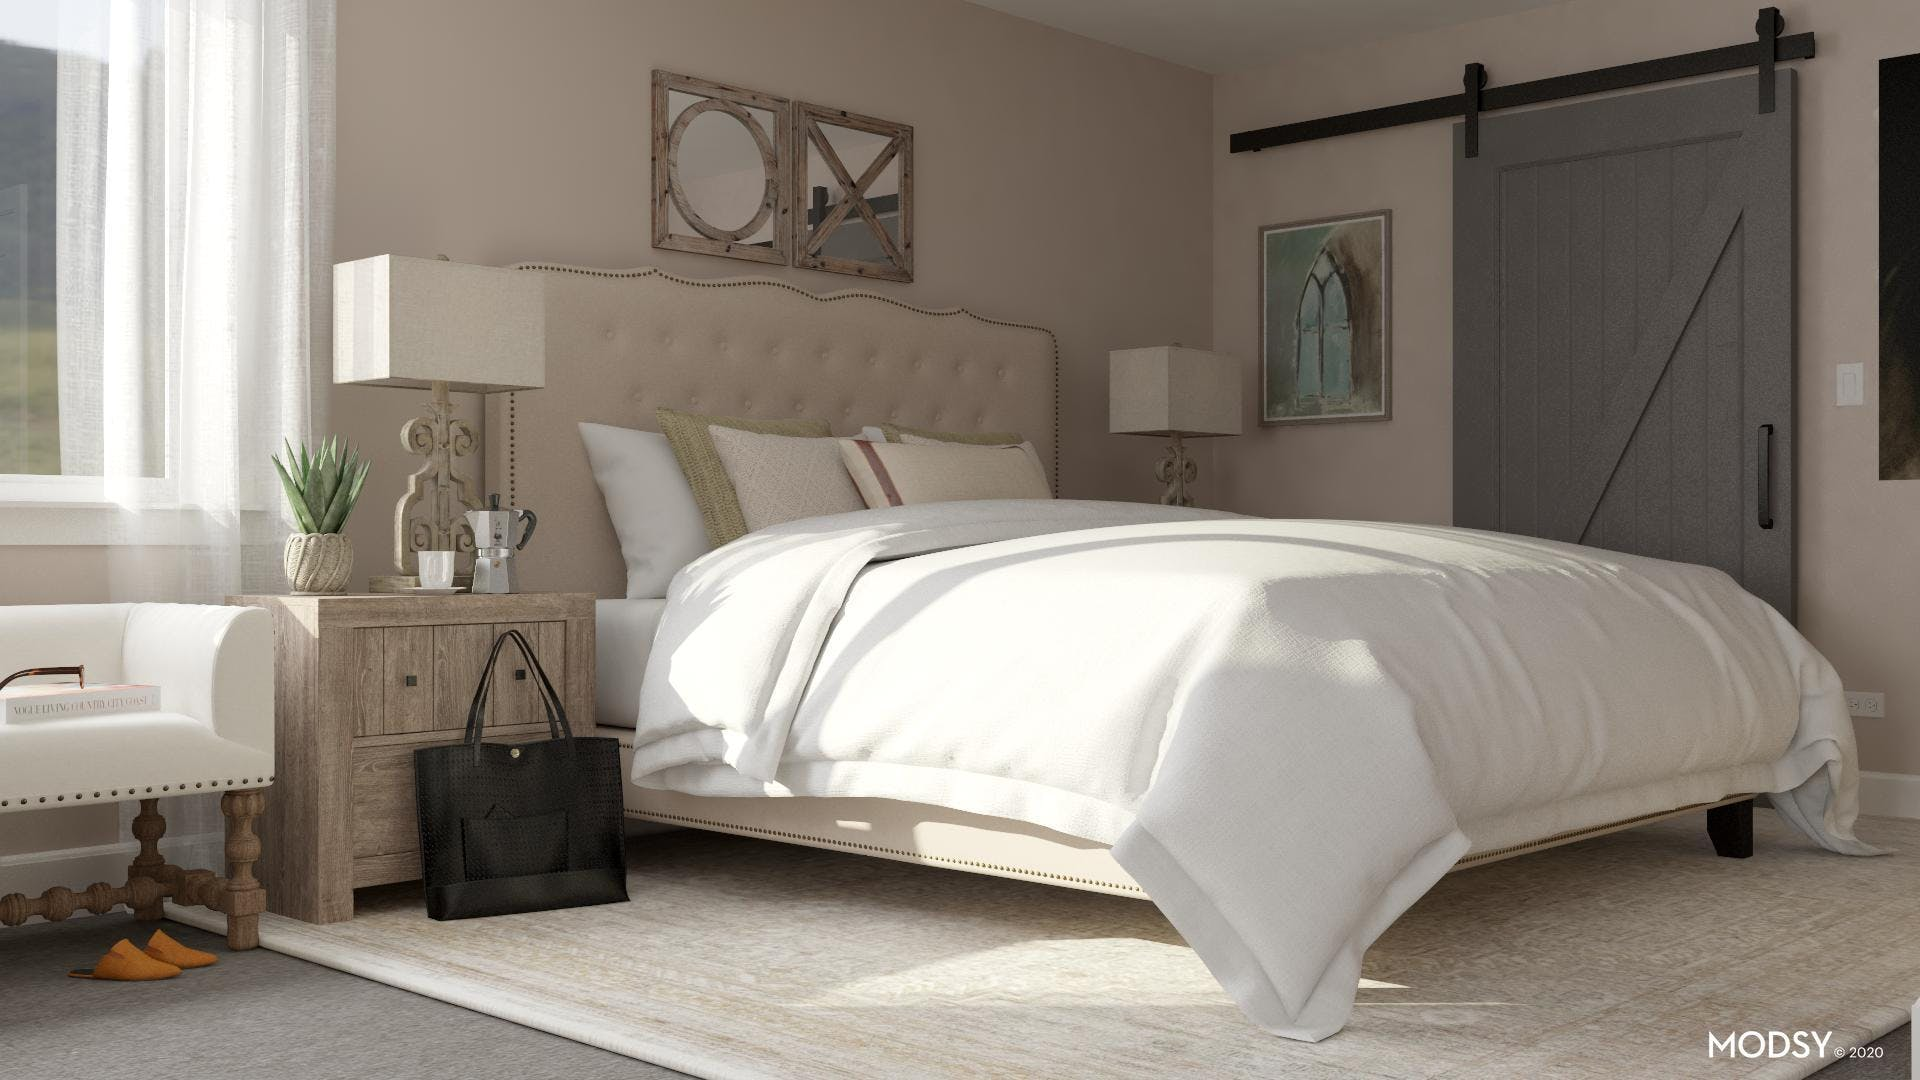 The Tufted Dream Bed